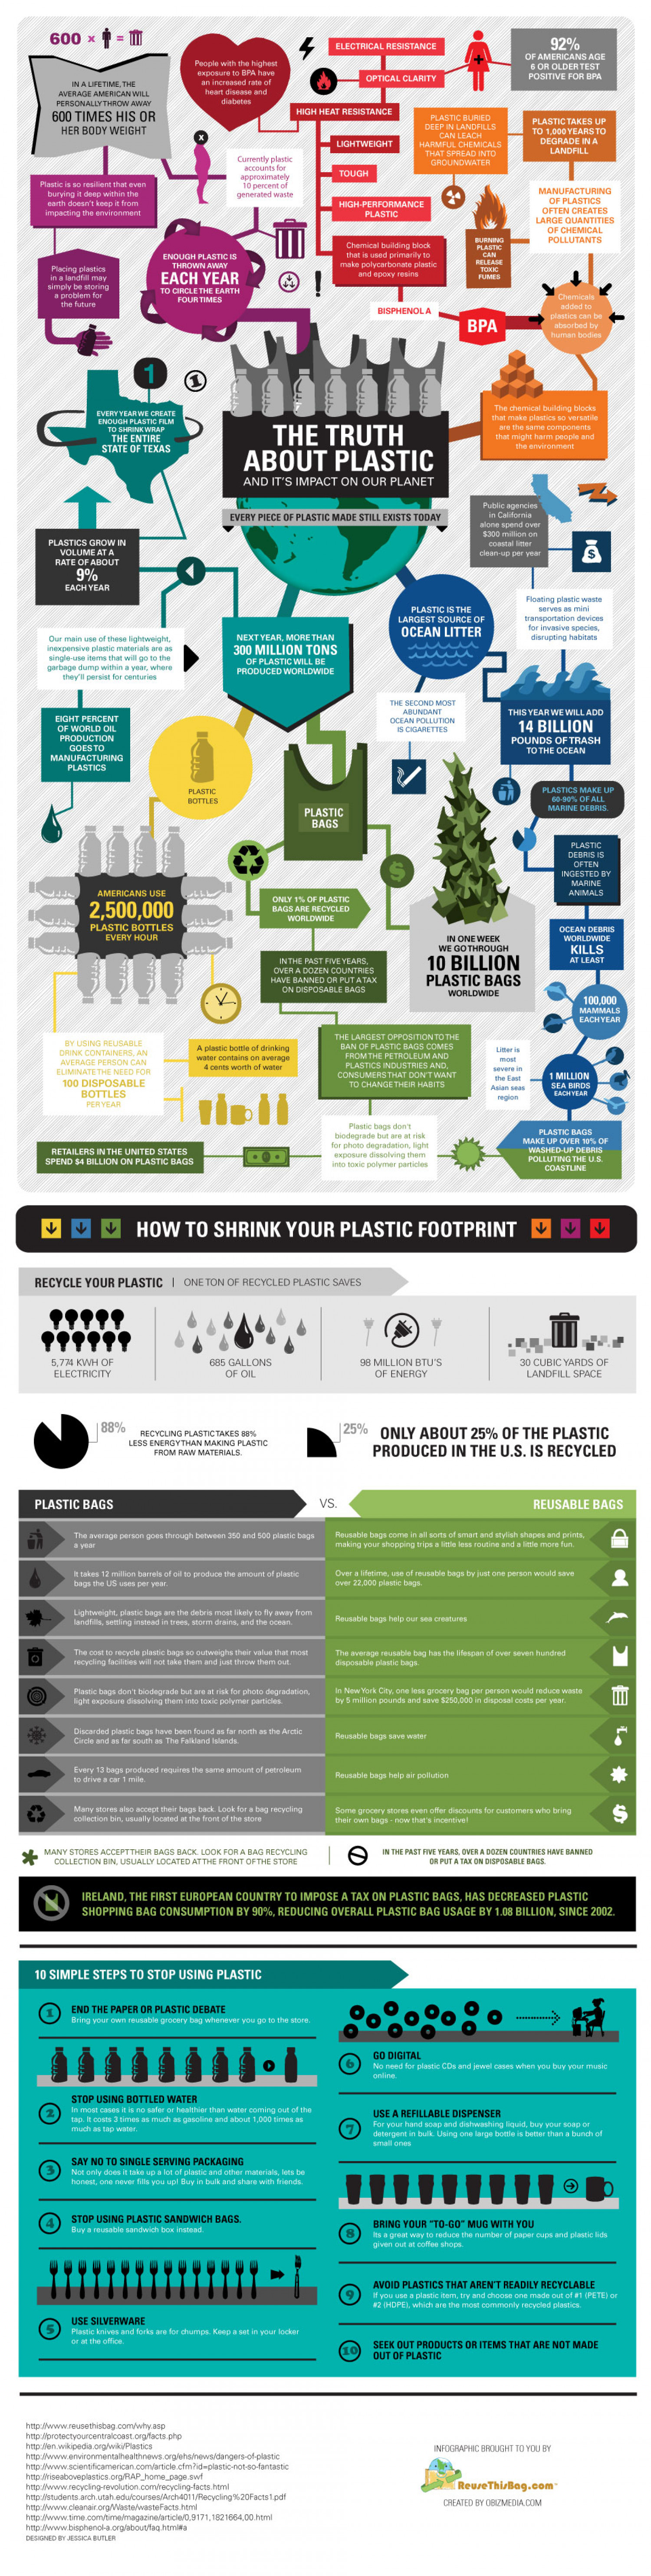 The Truth About Plastic And its Impact on Our Planet Infographic